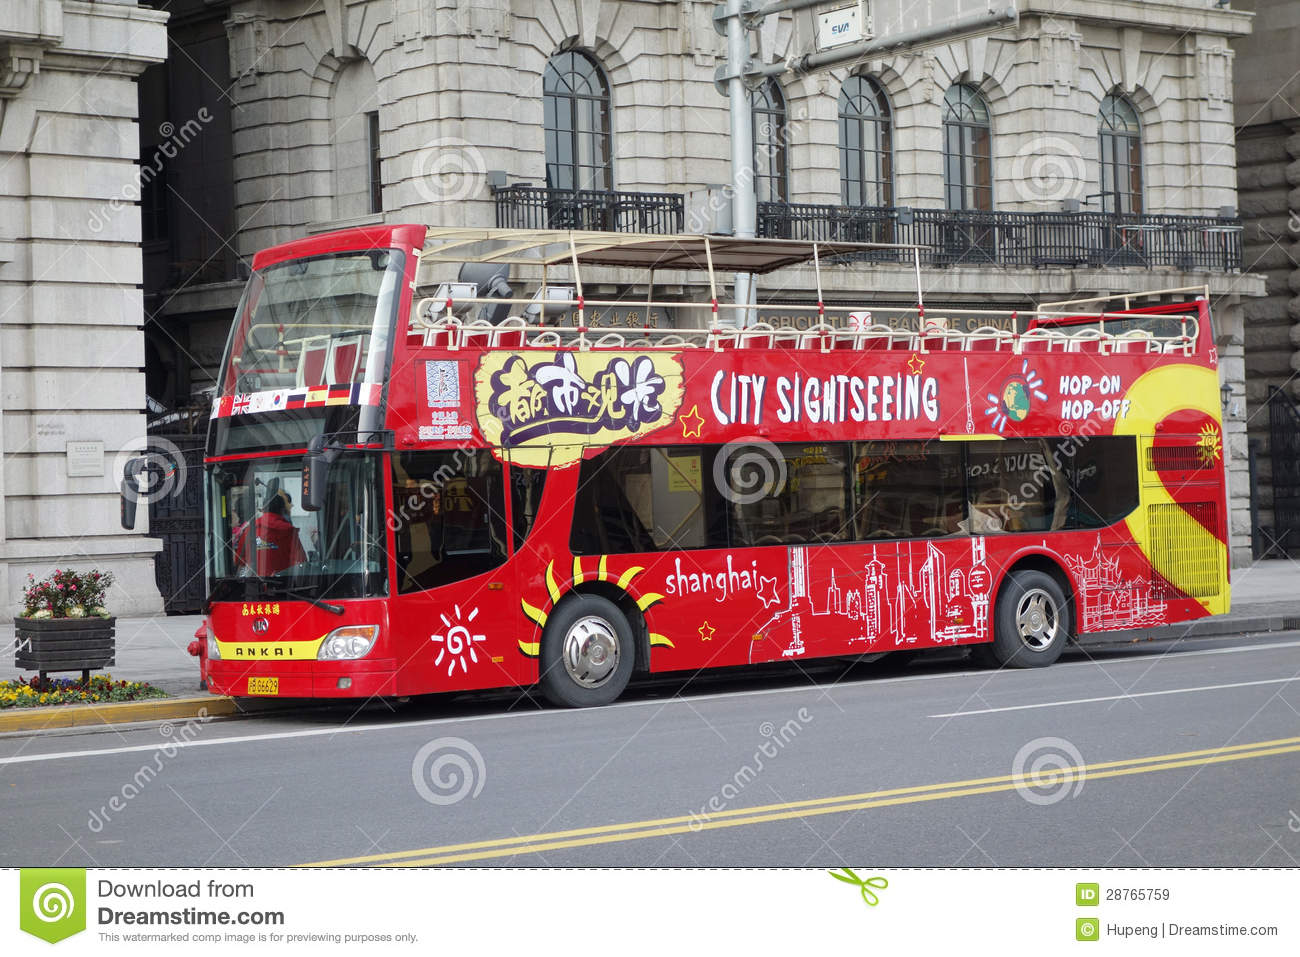 Sightseeing tour company business plan